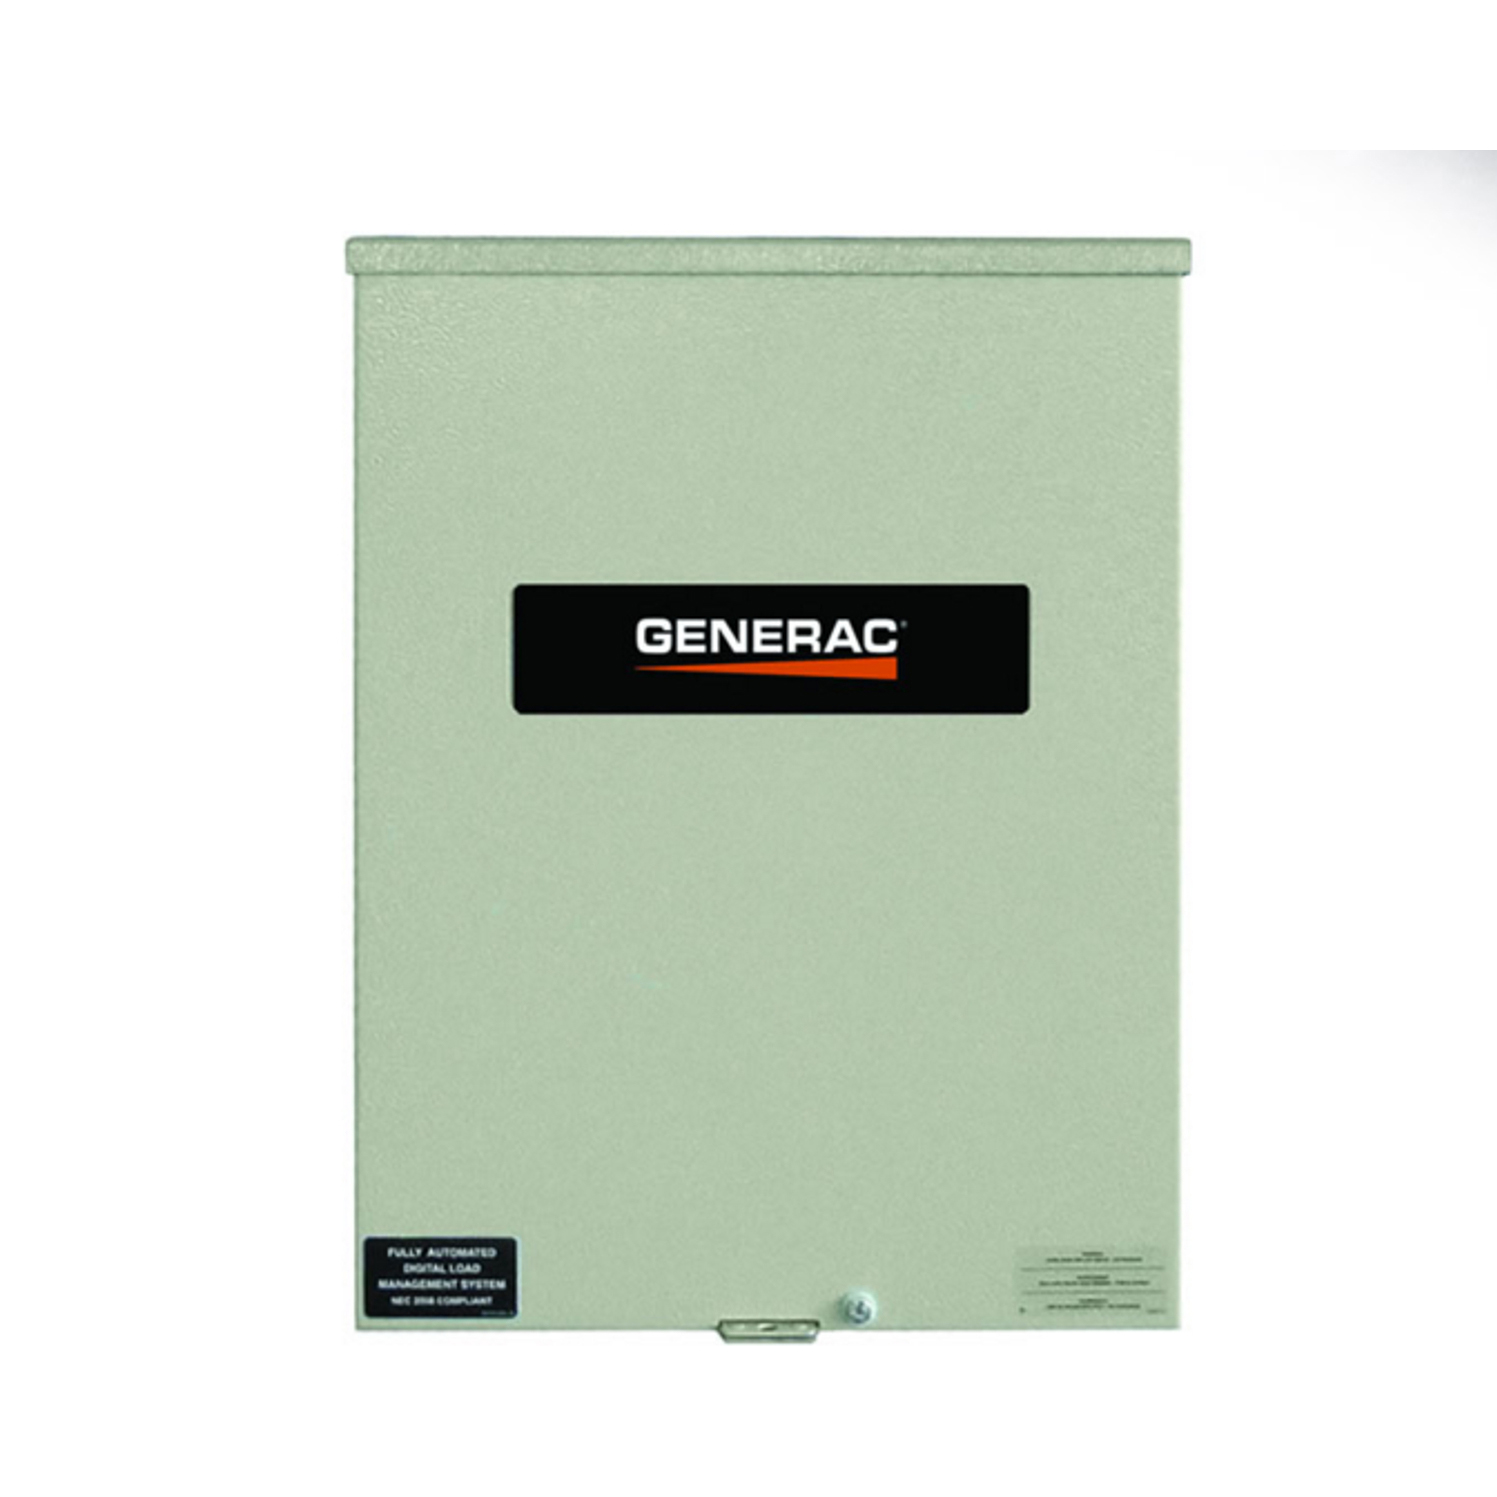 Generac Transfer Switch RTSW100A3